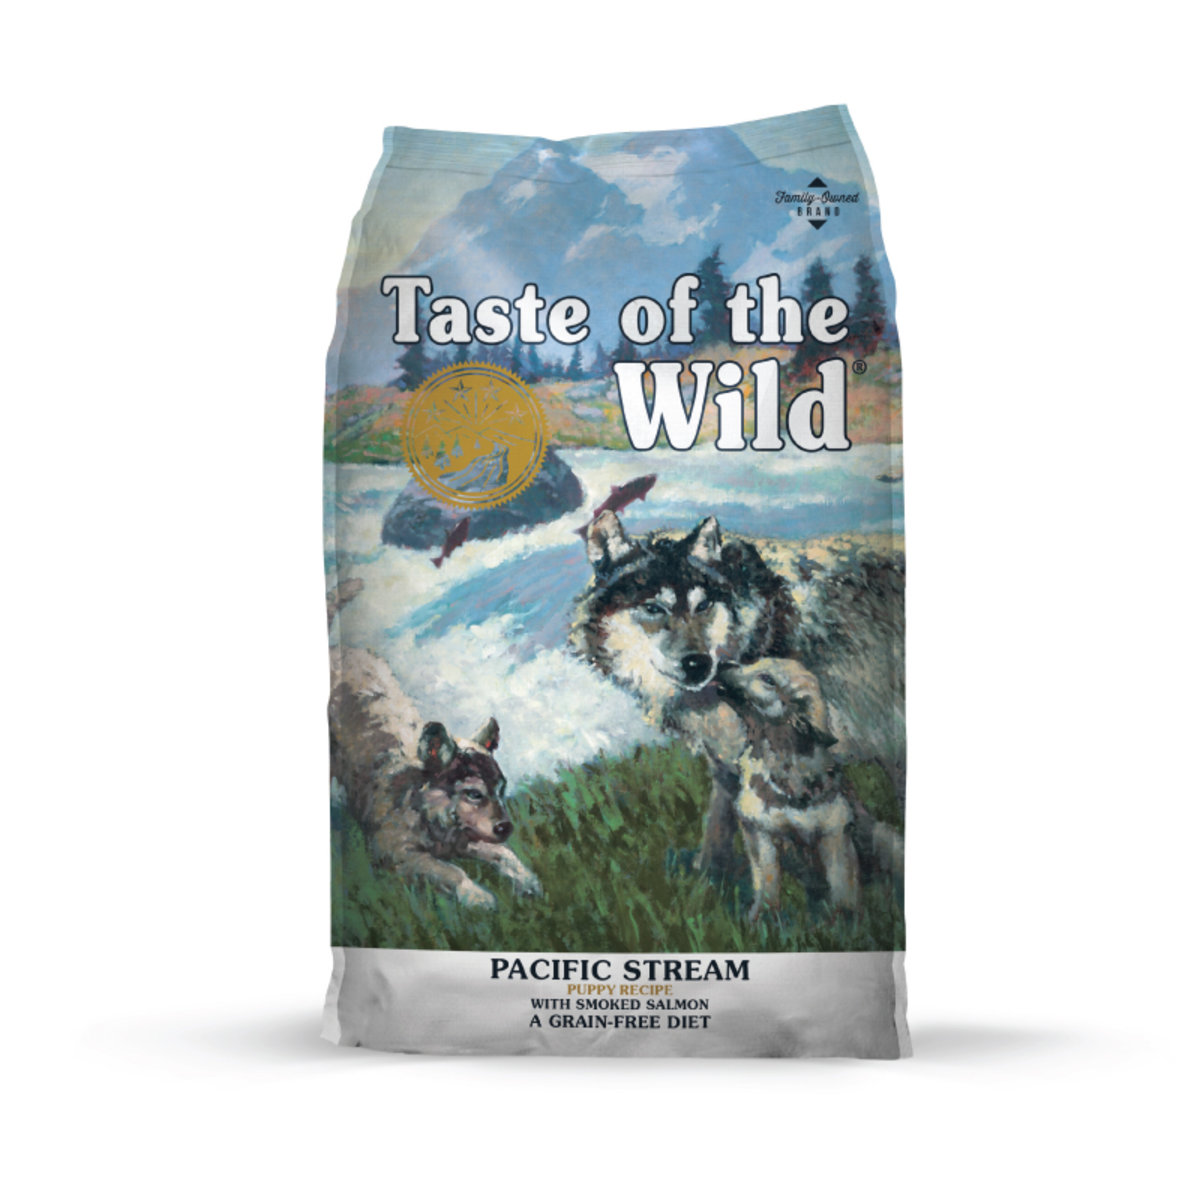 USA Pacific Stream Puppy® Recipe with Smoked Salmon 5 lbs